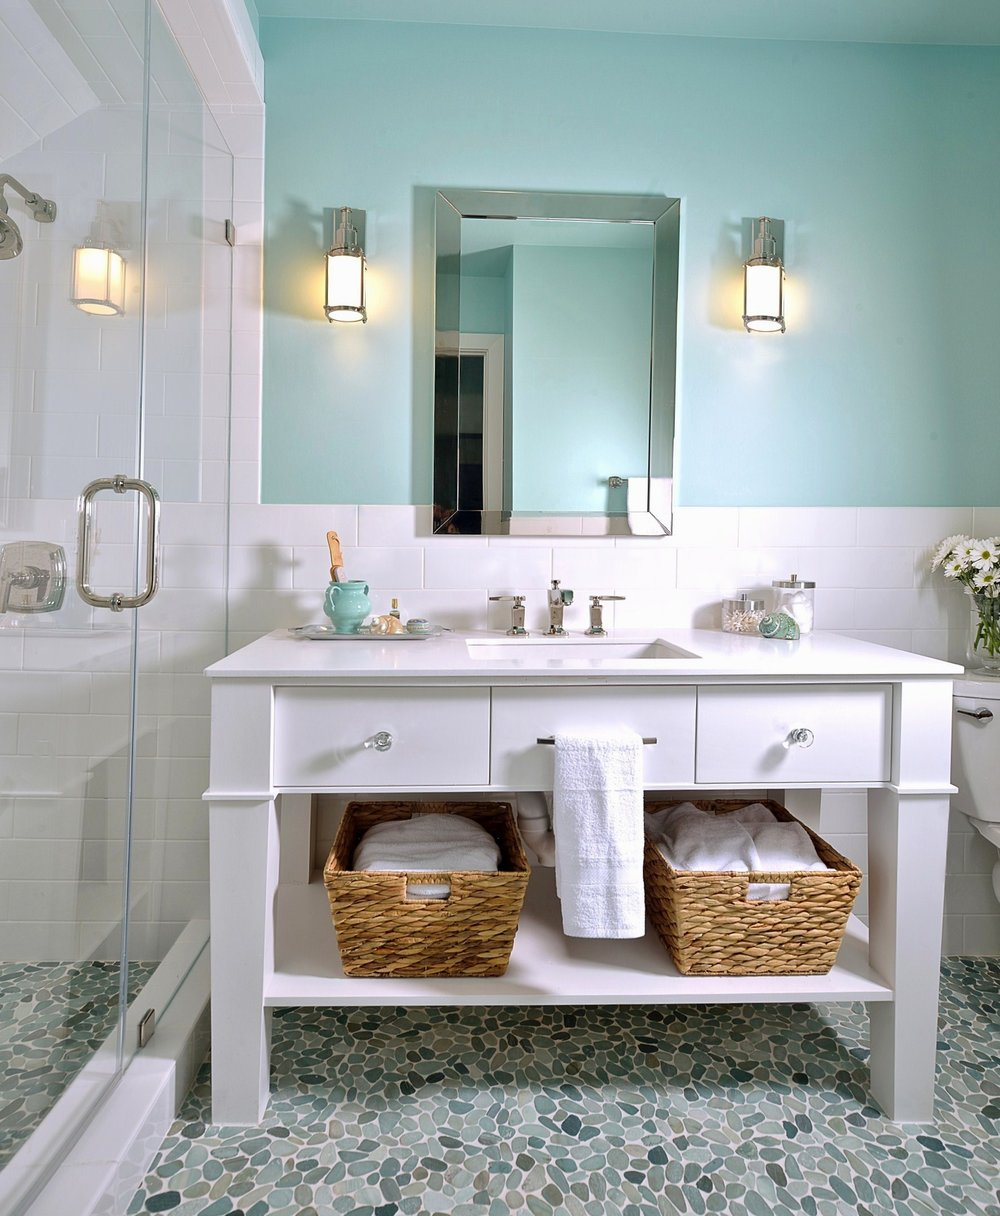 Girlu0027s Bathroom With Subway Tile Walls | Carla Aston, Designer